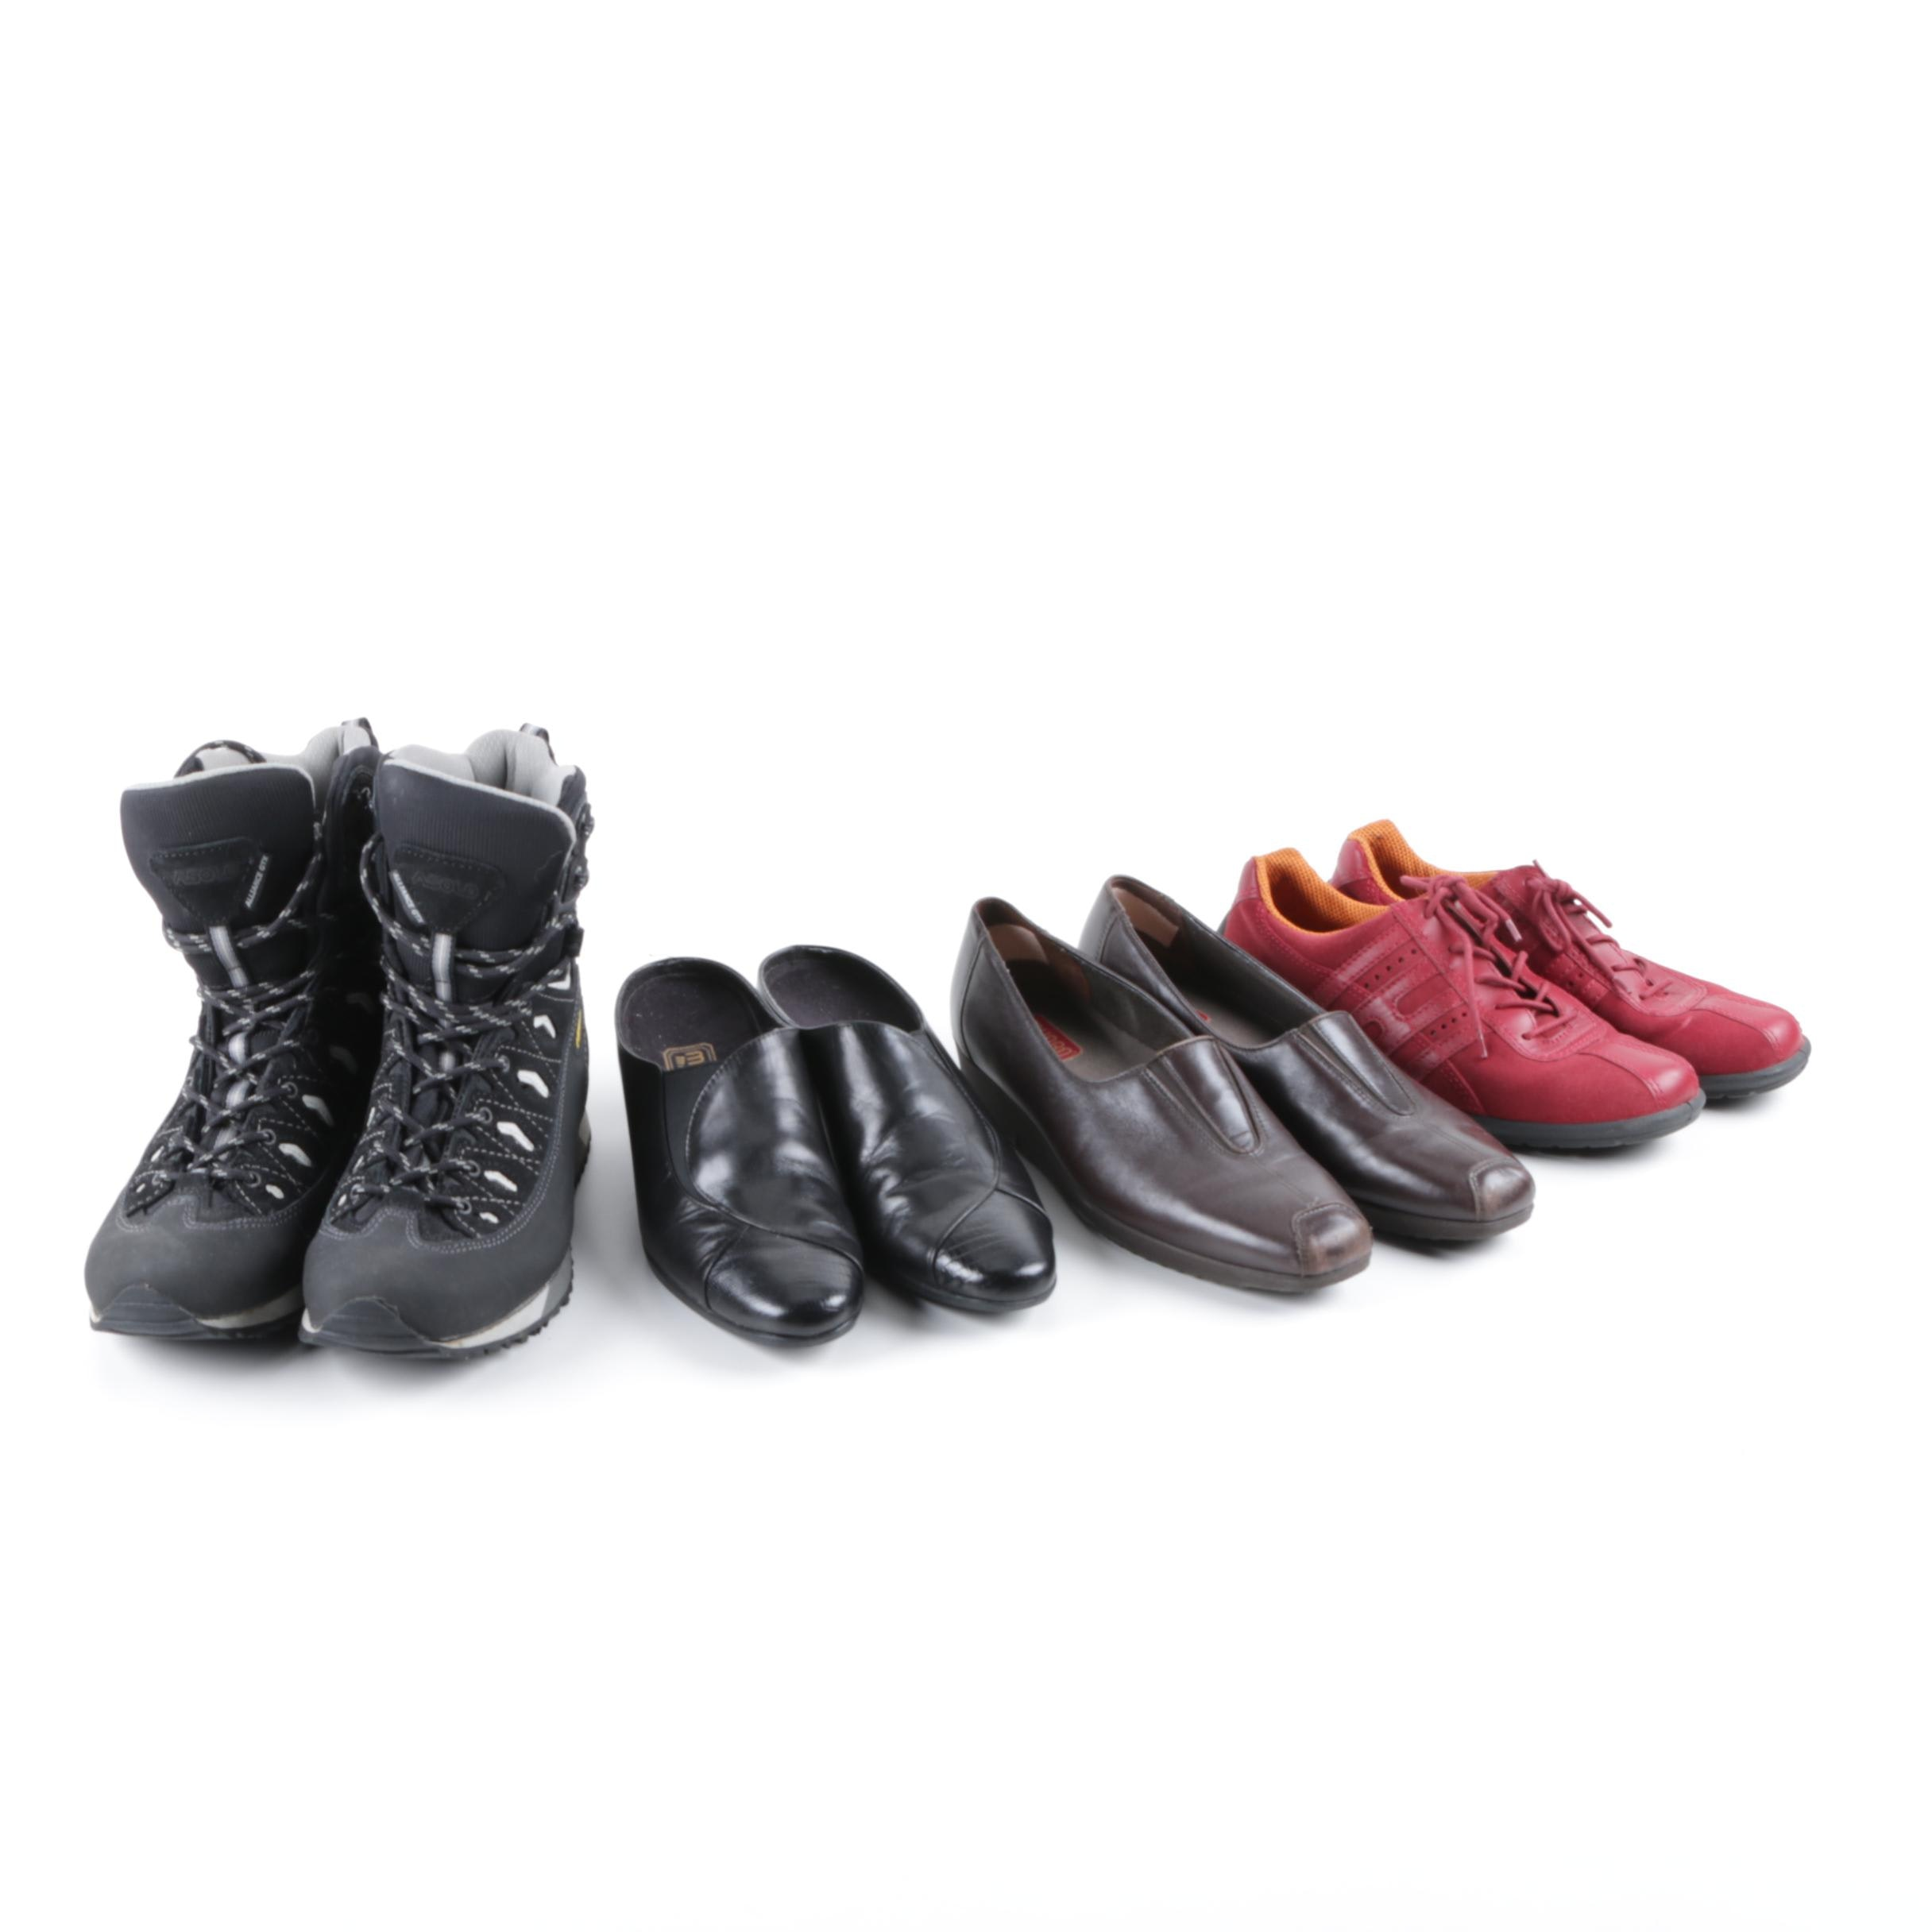 Women's Shoes Including Munro and Hiking Boots